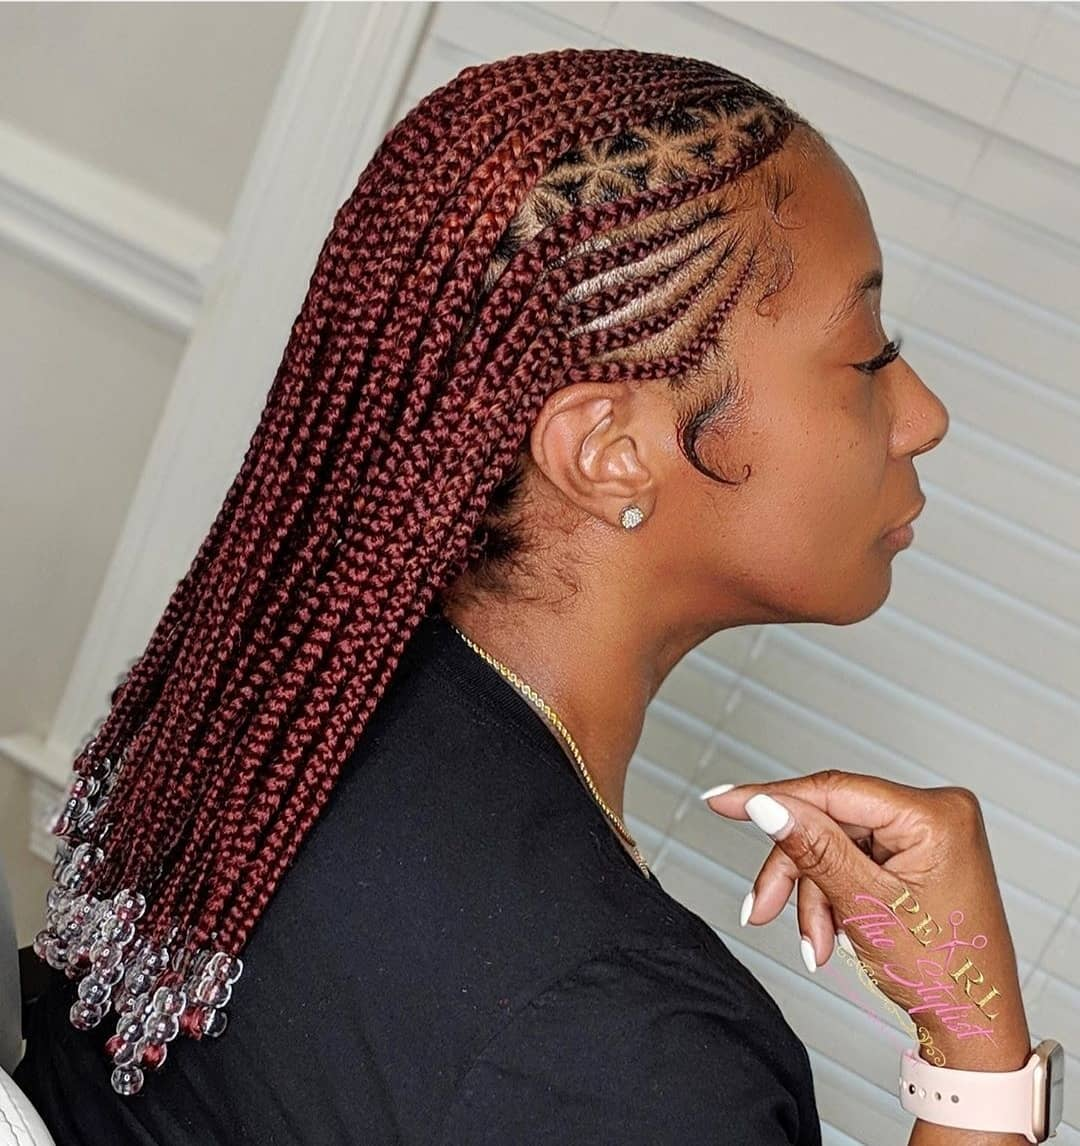 2020 Braided Hairstyles That Are Totally Hip and Cute